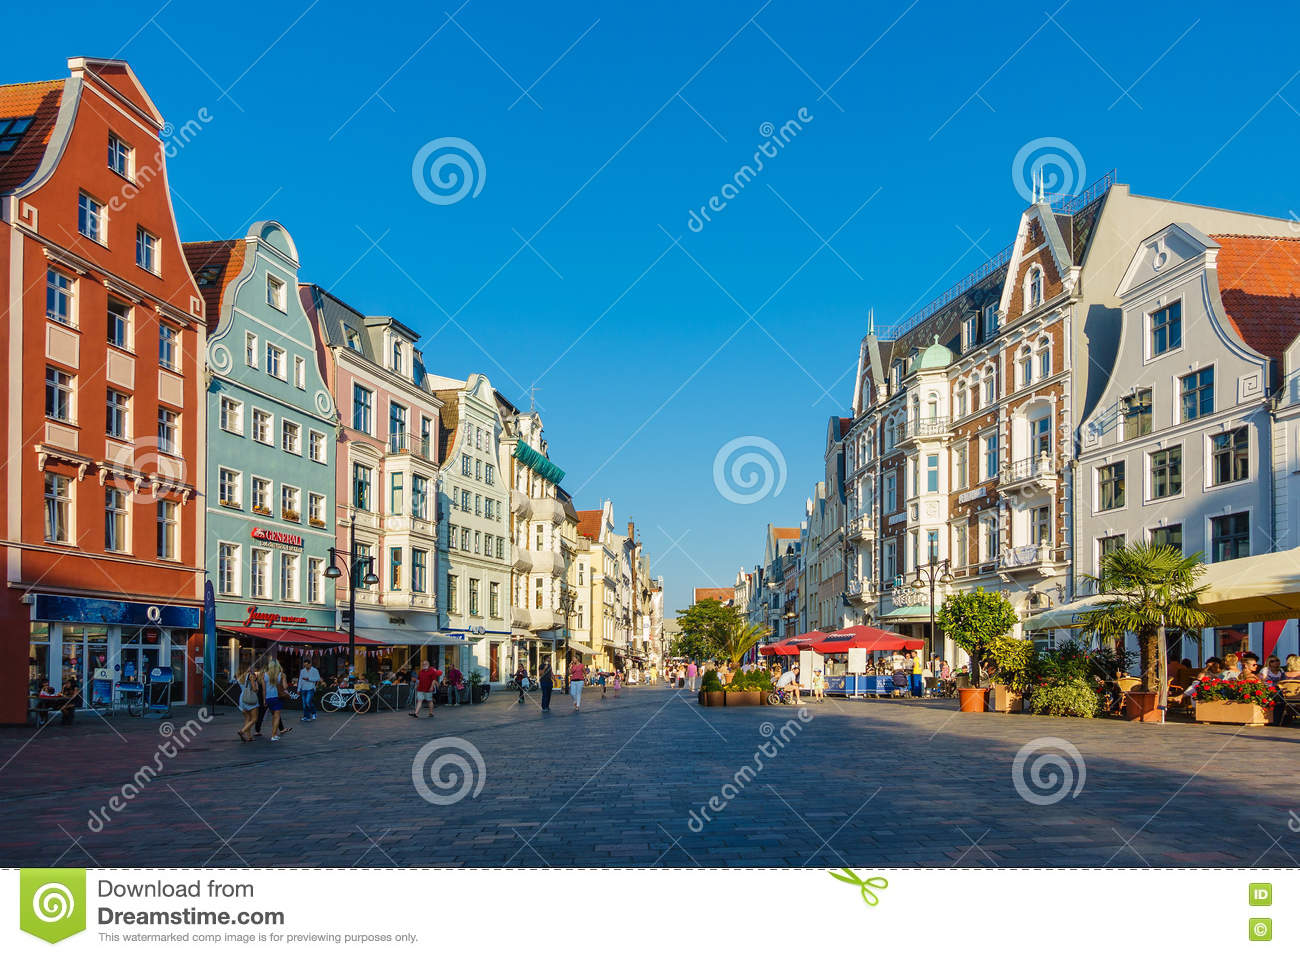 Rostock Shopping Rostock, Germany - August 2016: Hanse Sail Event With